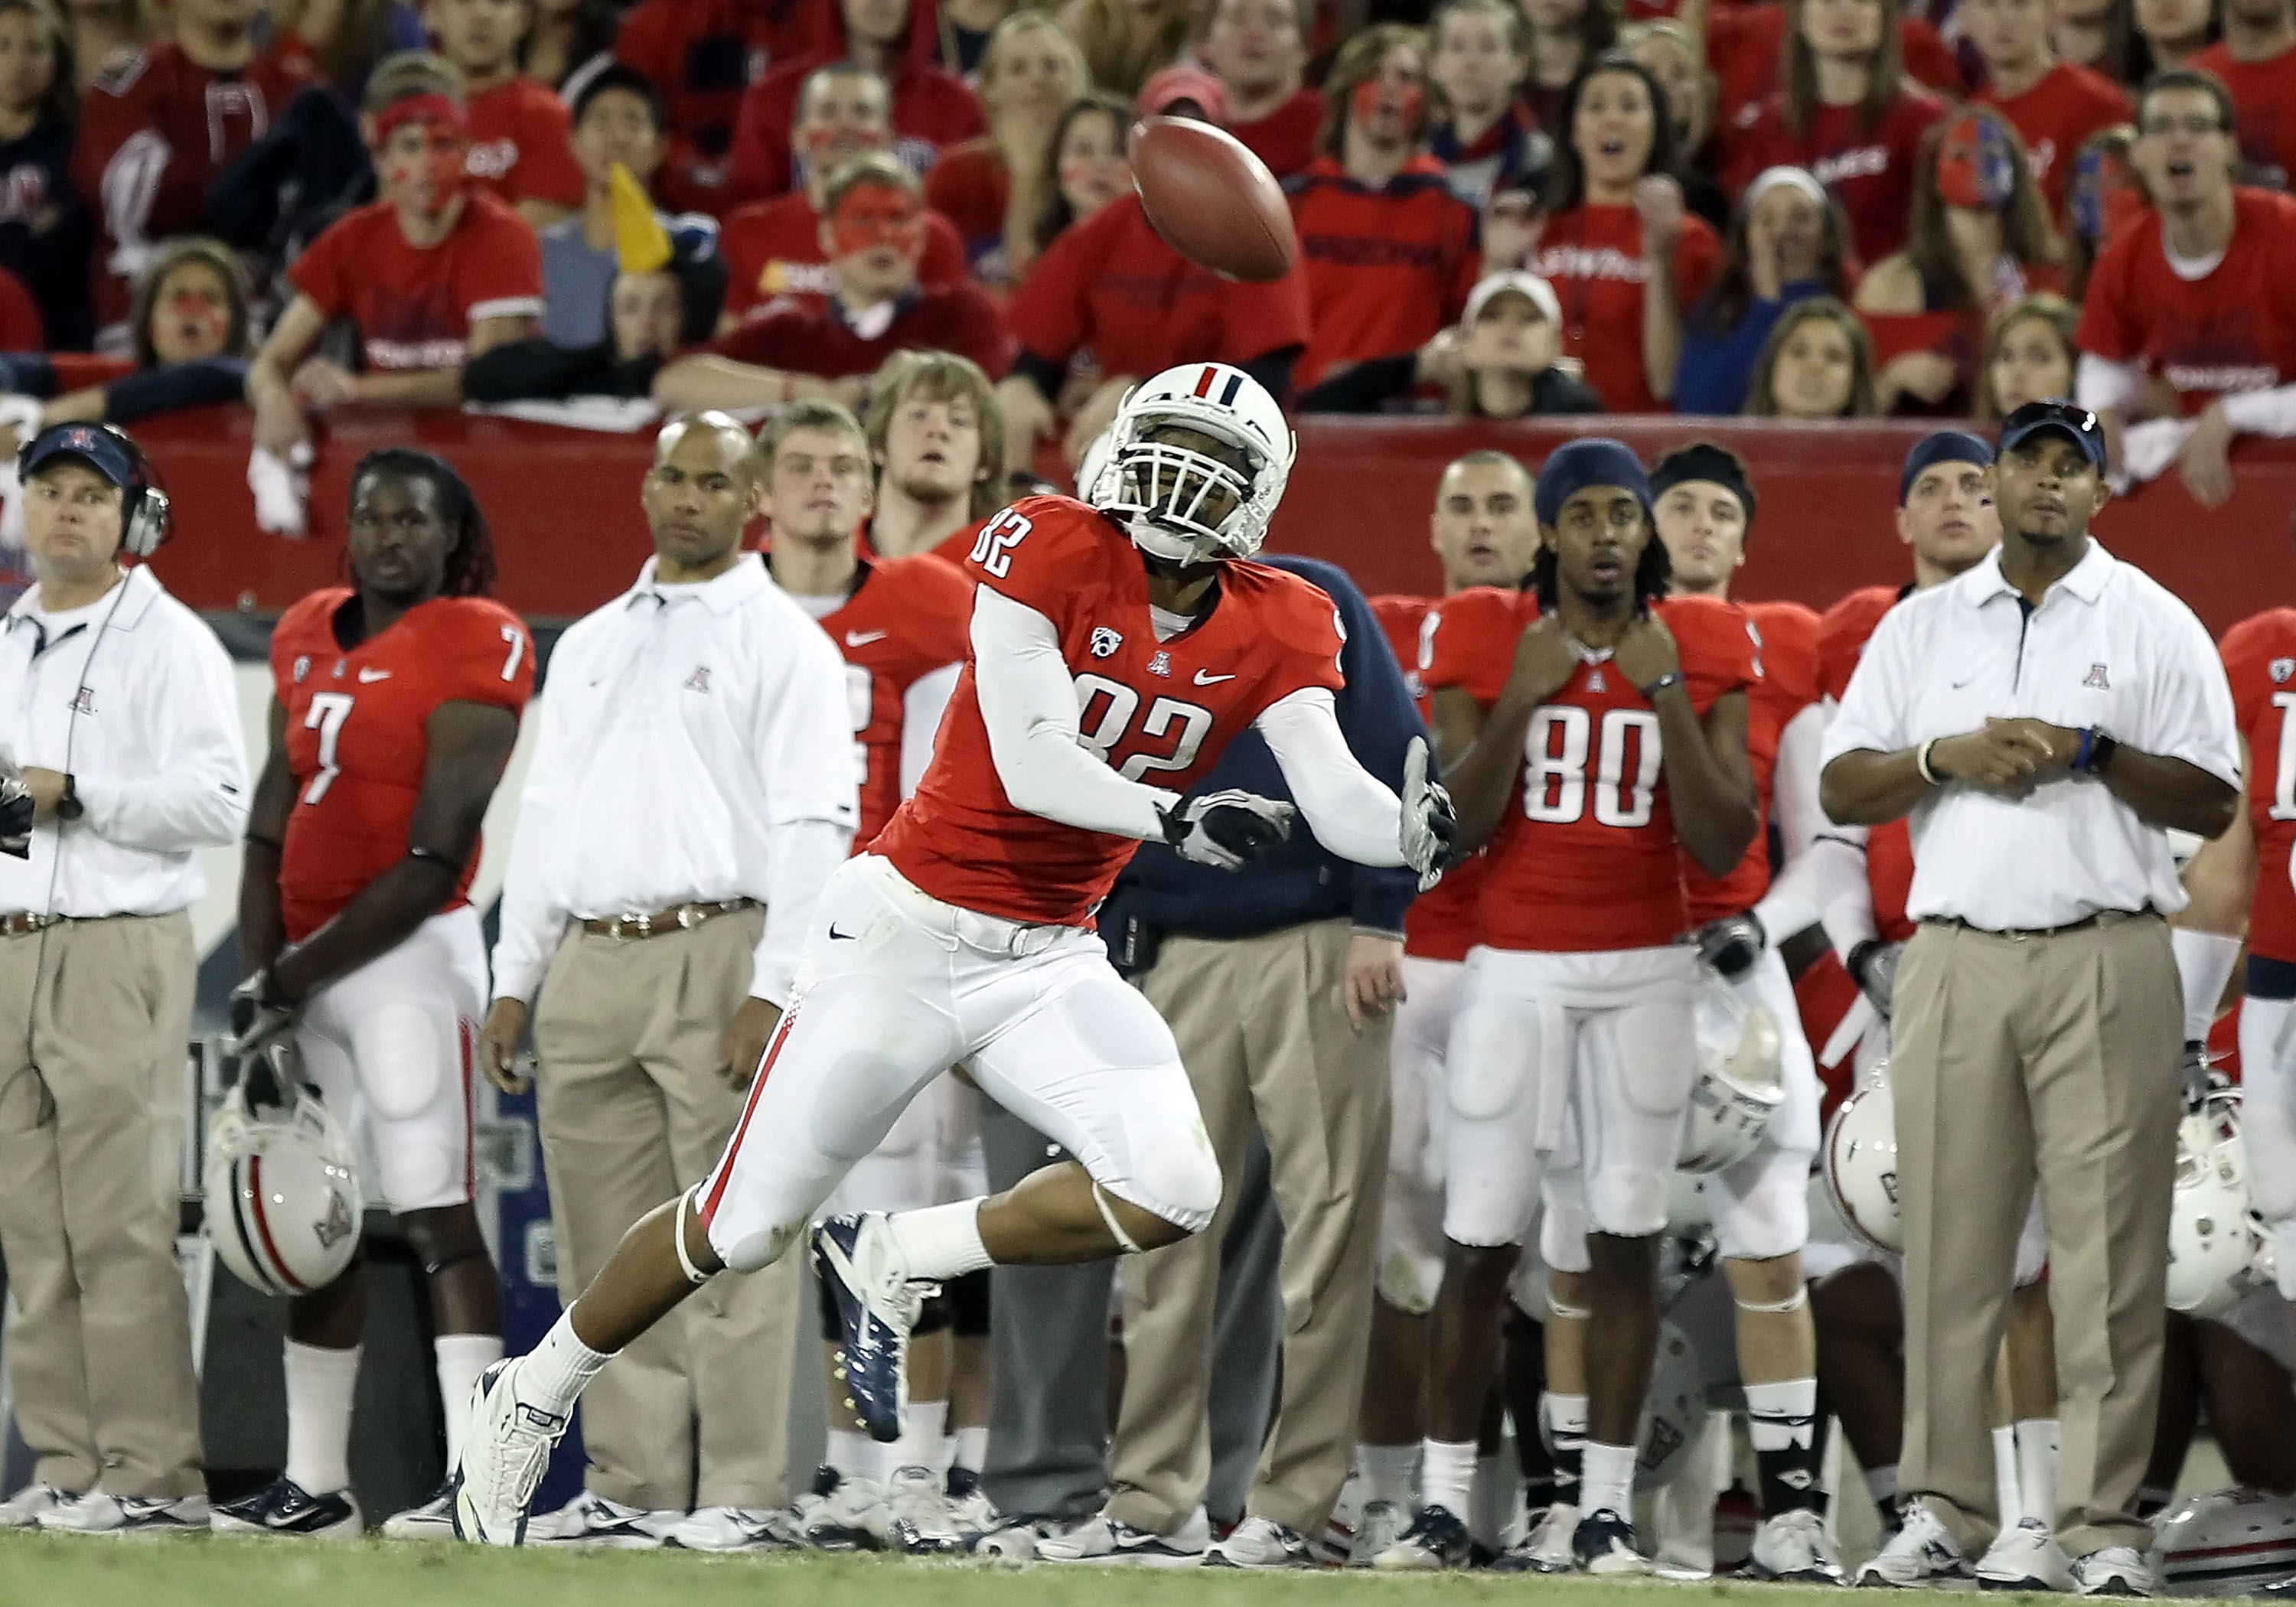 TUCSON, AZ - DECEMBER 02:  Wide receiver Juron Criner #82 of the Arizona Wildcats is unable to catch a deep pass during the college football game against the Arizona State Sun Devils at Arizona Stadium on December 2, 2010 in Tucson, Arizona.  (Photo by Ch